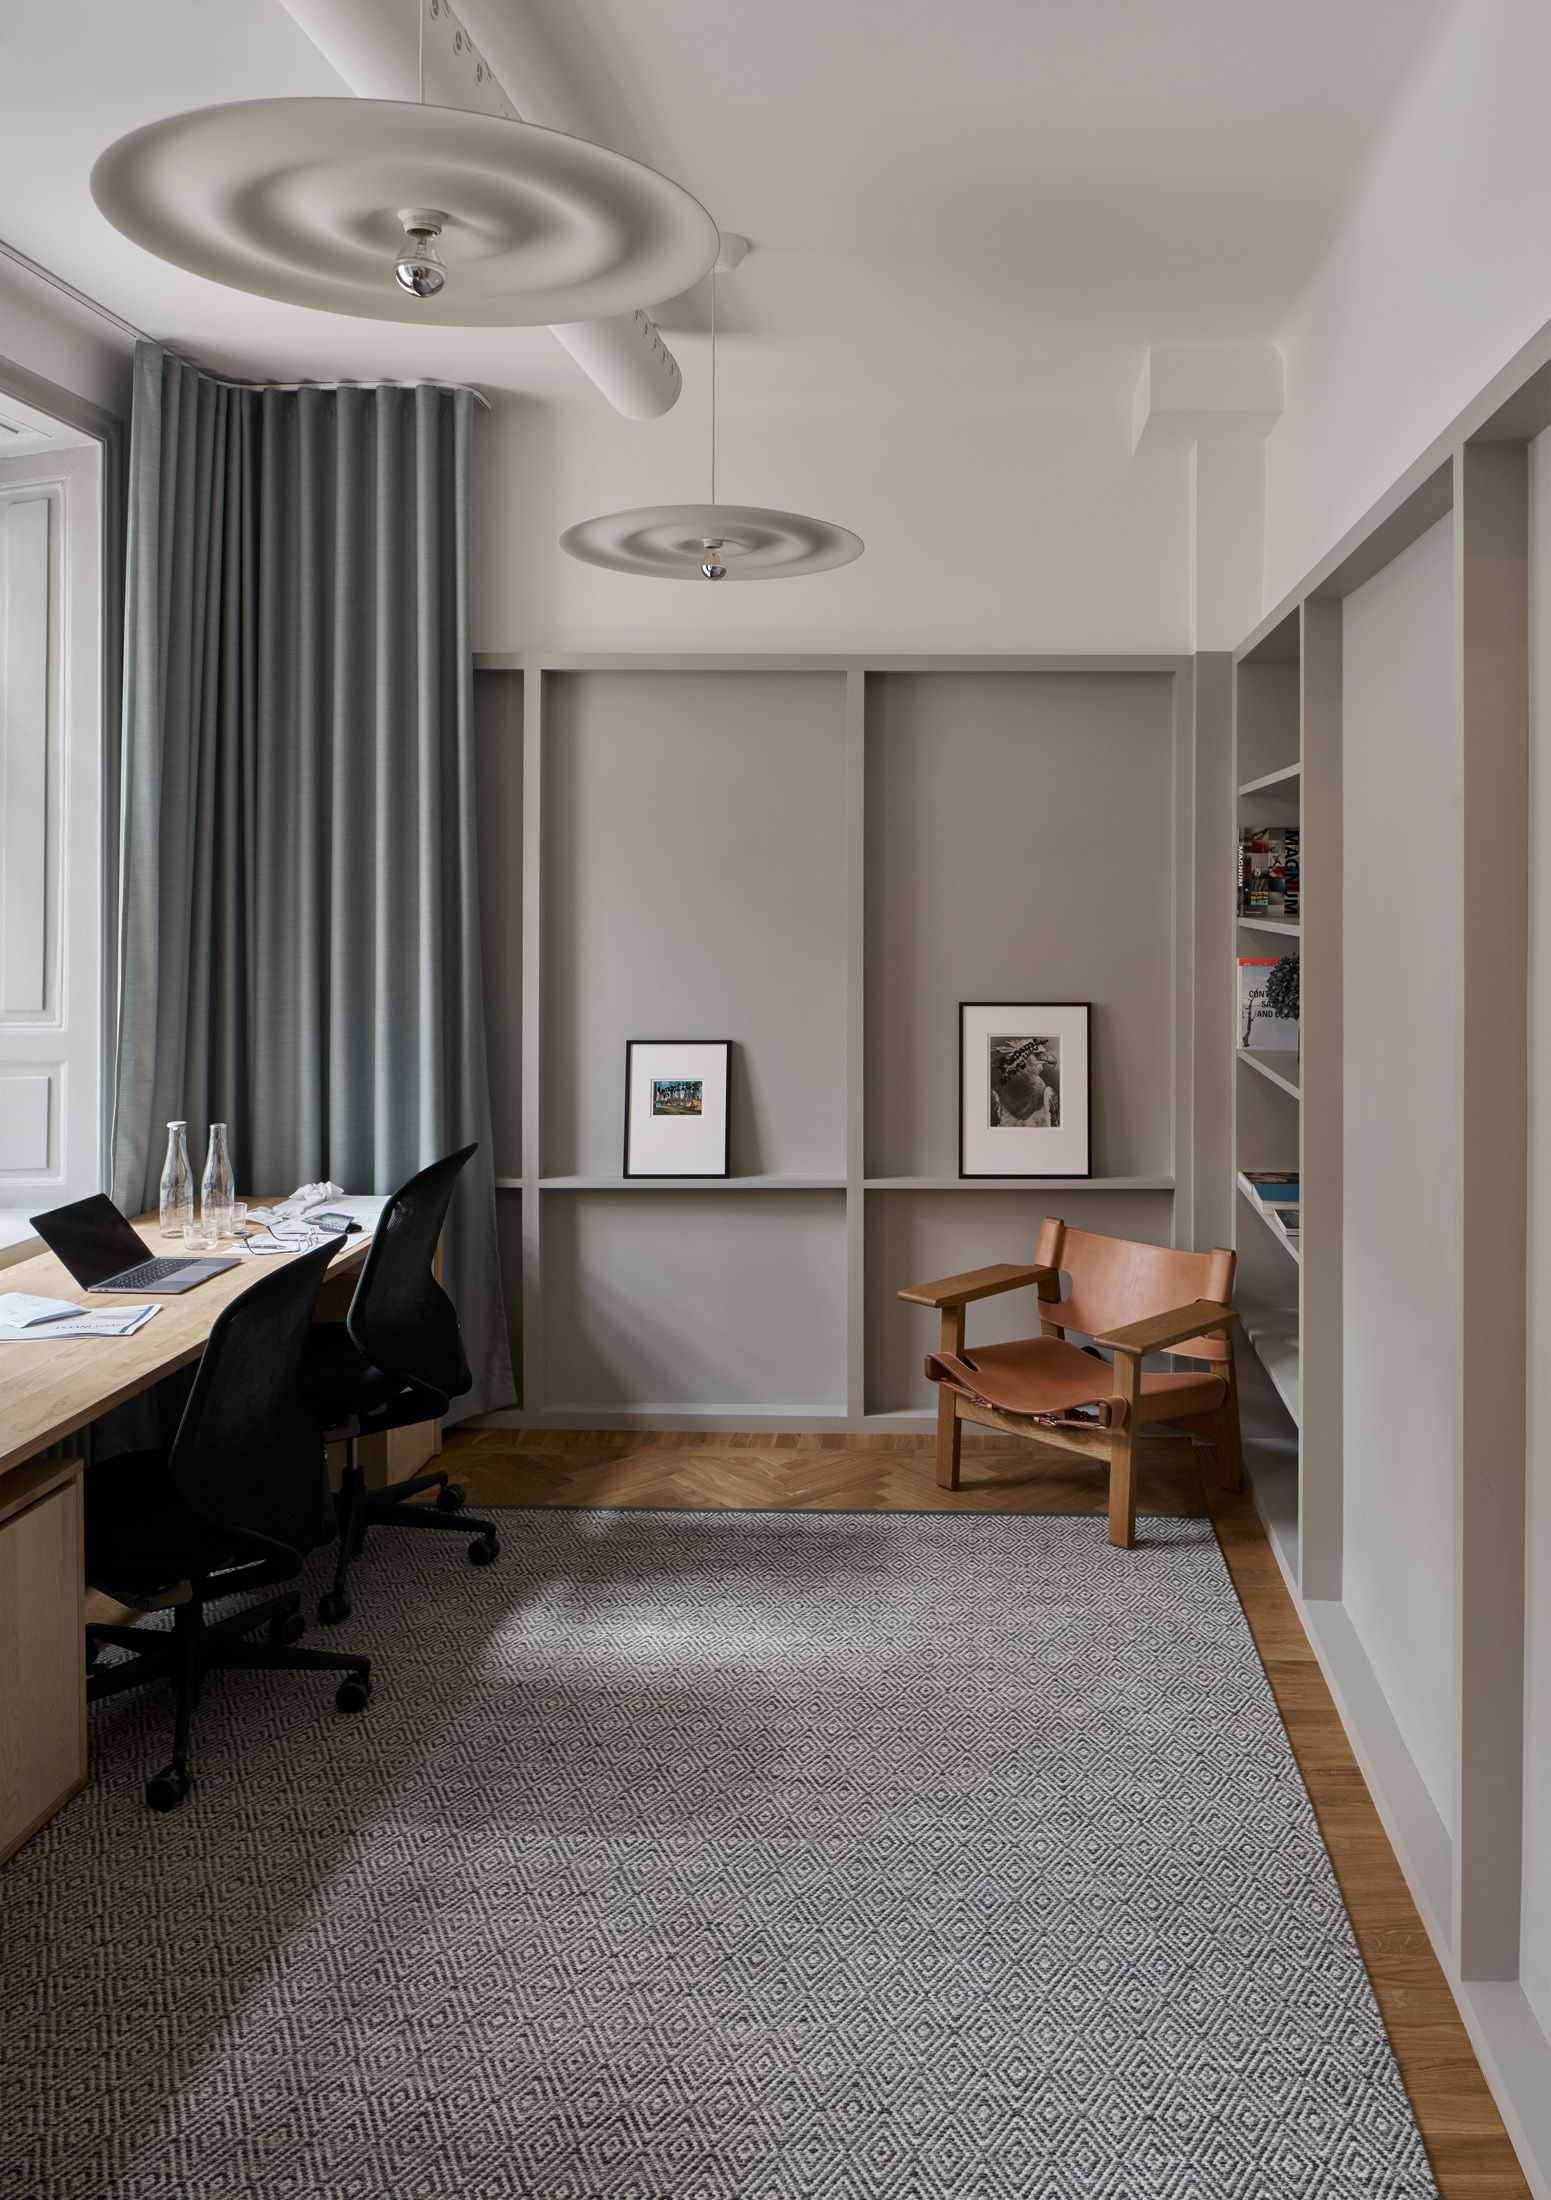 Home Office Club Alma Creative Club Leibal Featuring Minimal And Functional